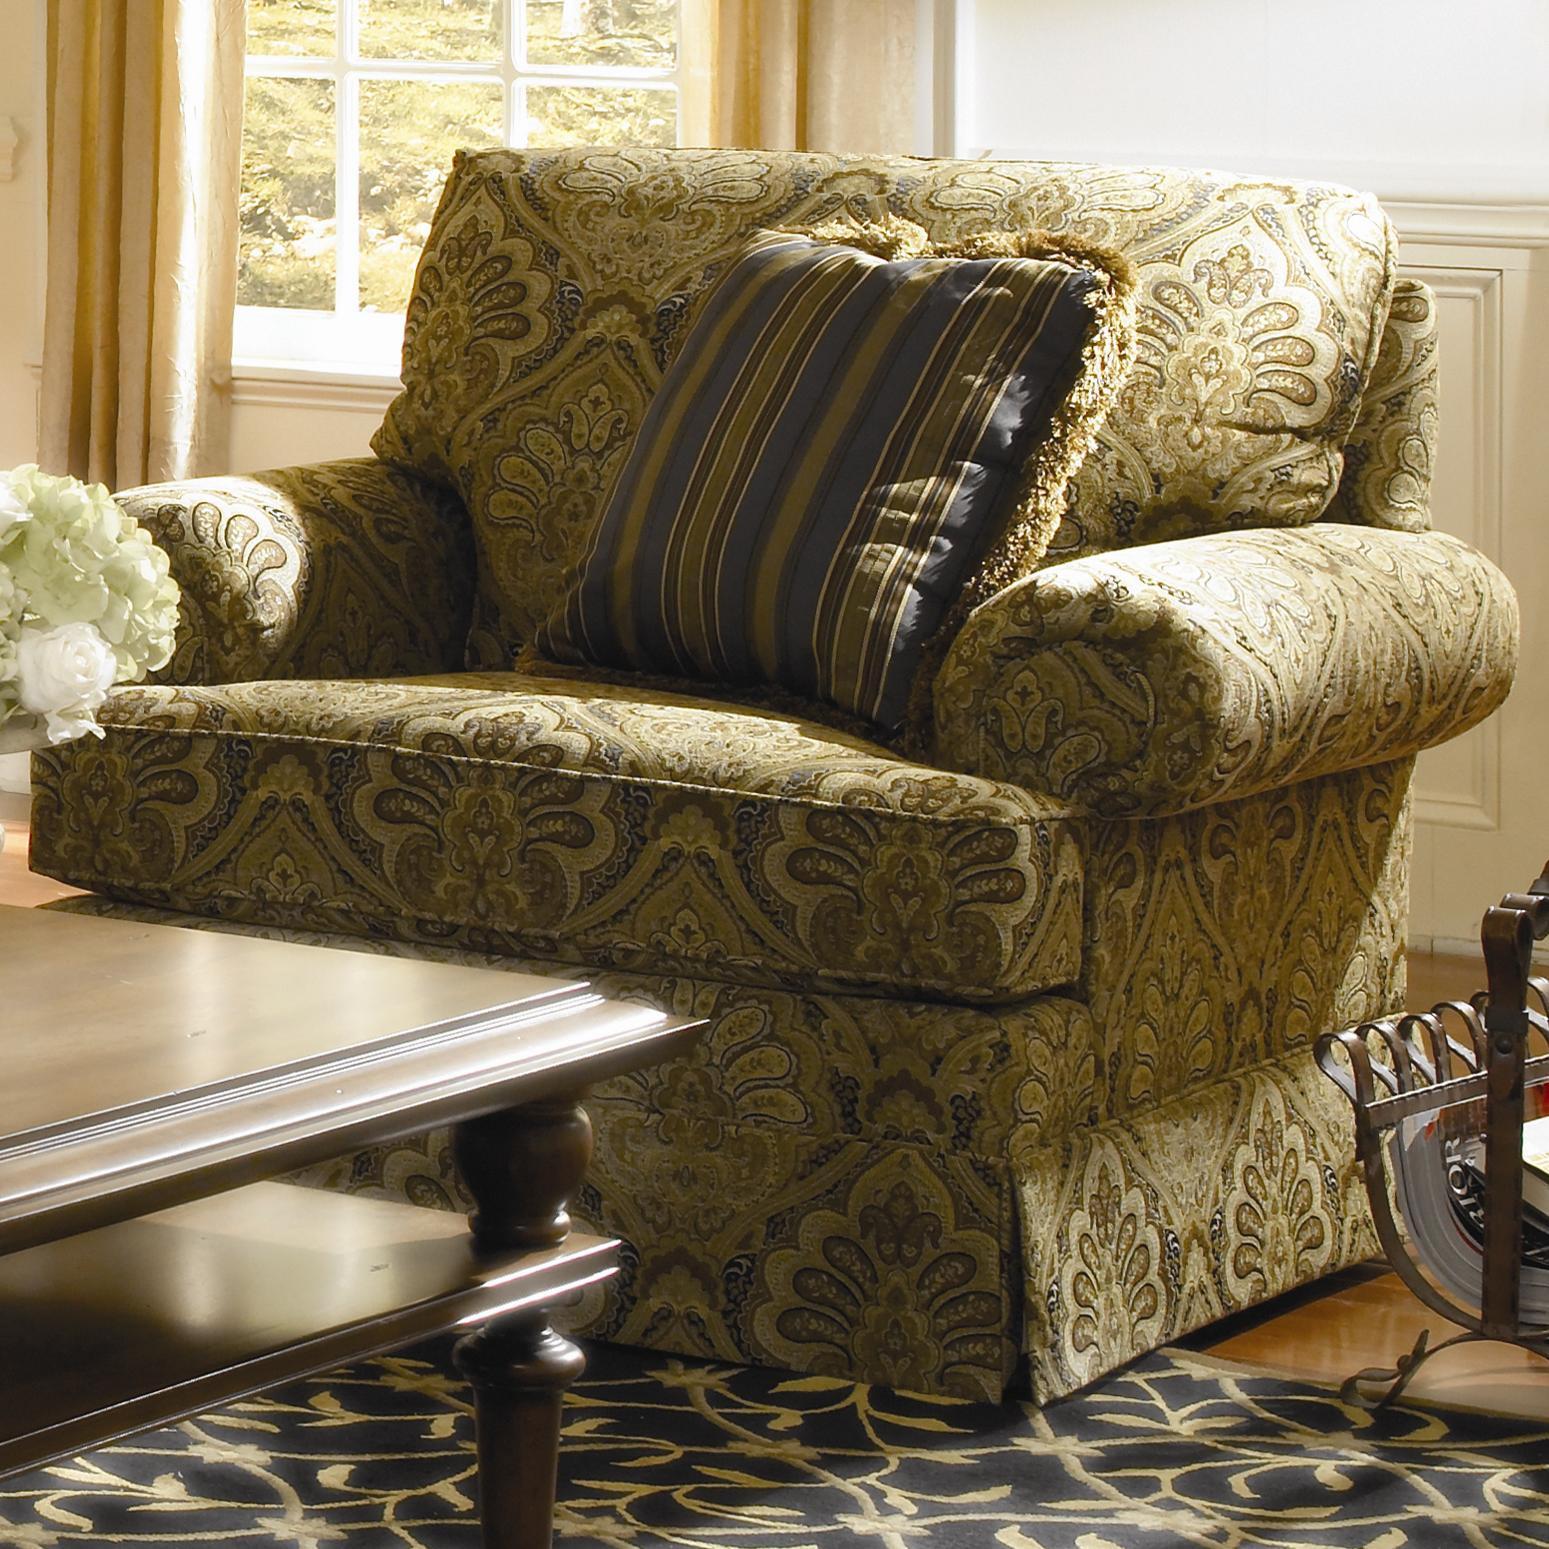 Custom Select Upholstery Custom Upholstered Chair by Kincaid Furniture at Johnny Janosik